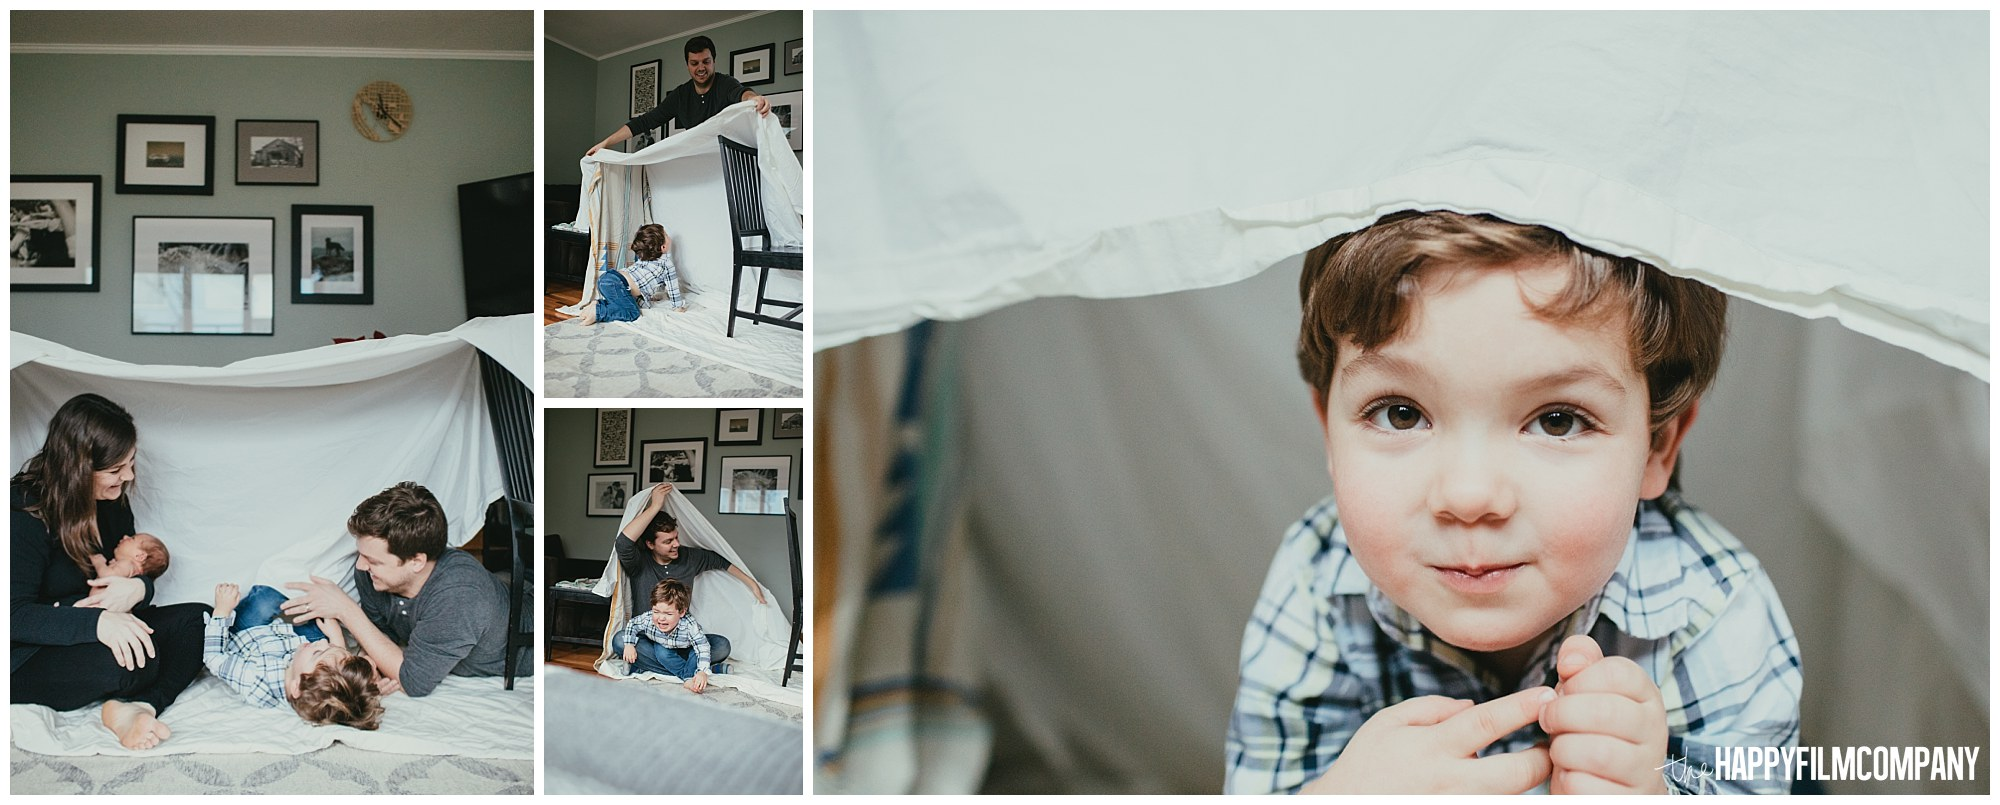 the Happy Film Company - Seattle Newborn Photographer - family forts building kids